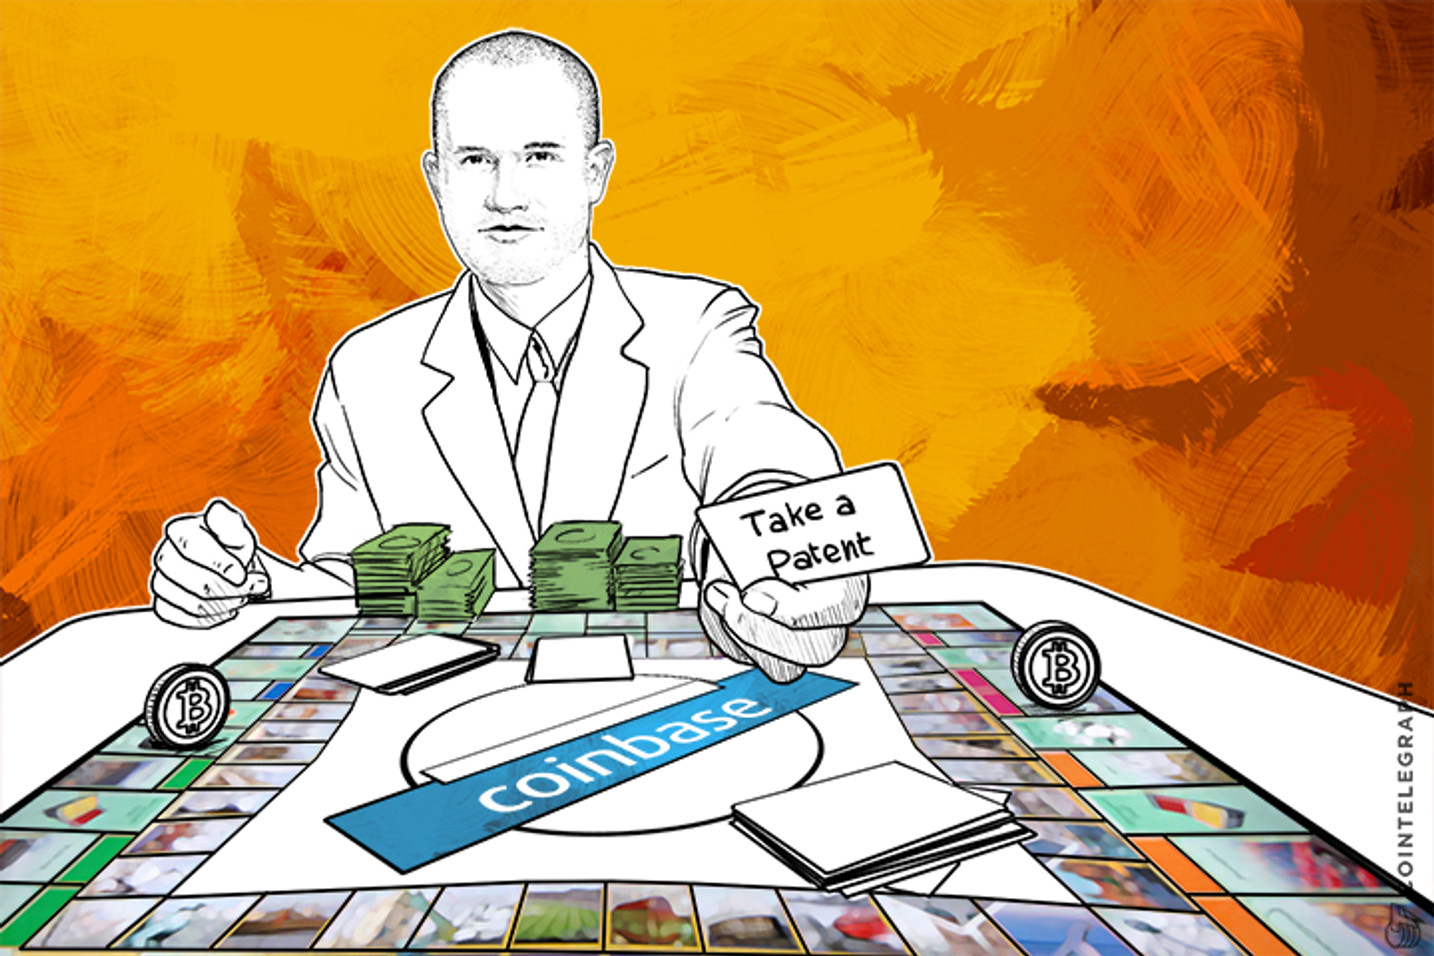 Coinbase on Bitcoin Patents: 'Don't Hate the Player, Hate the Game'